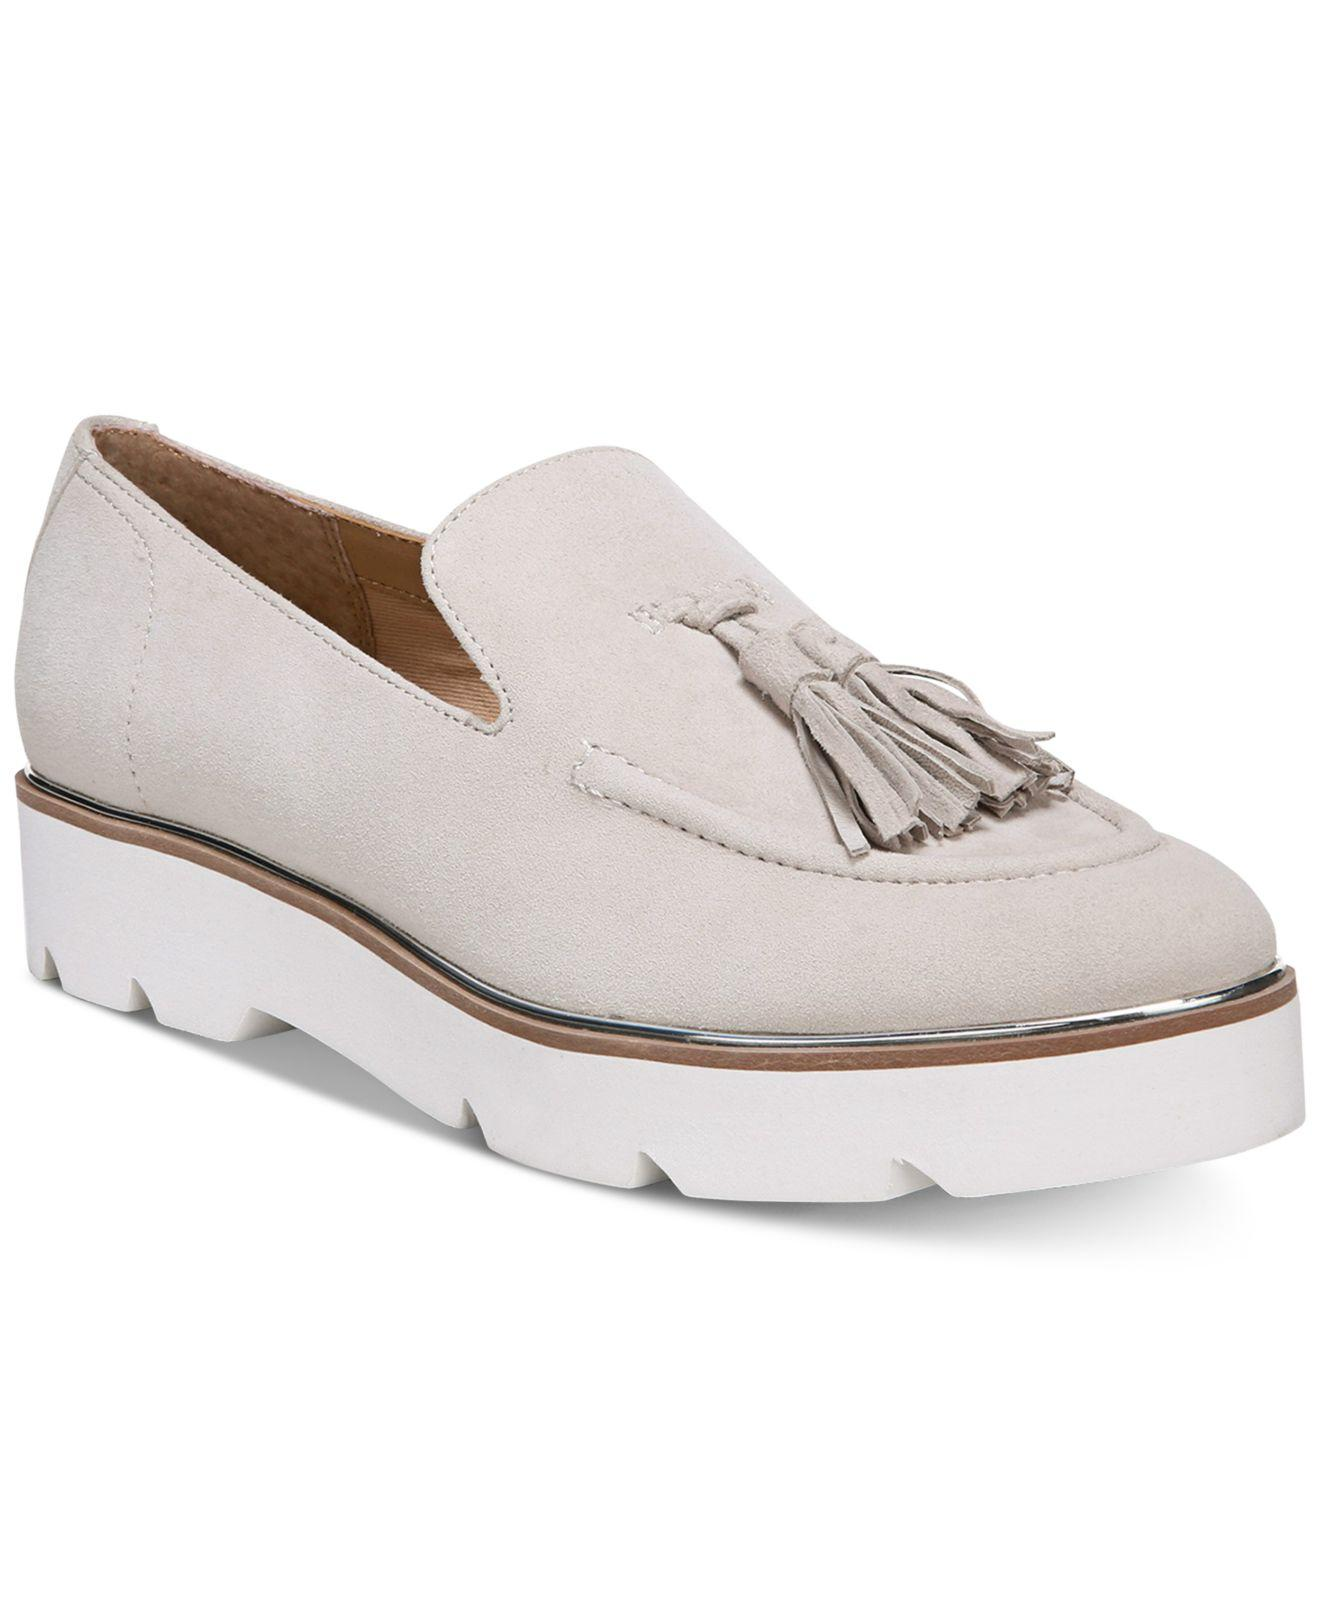 eca7928f148 Franco Sarto. Women s Gray Tammer Loafers.  99  69 From Macy s. Free  shipping with Macy s on orders over ...